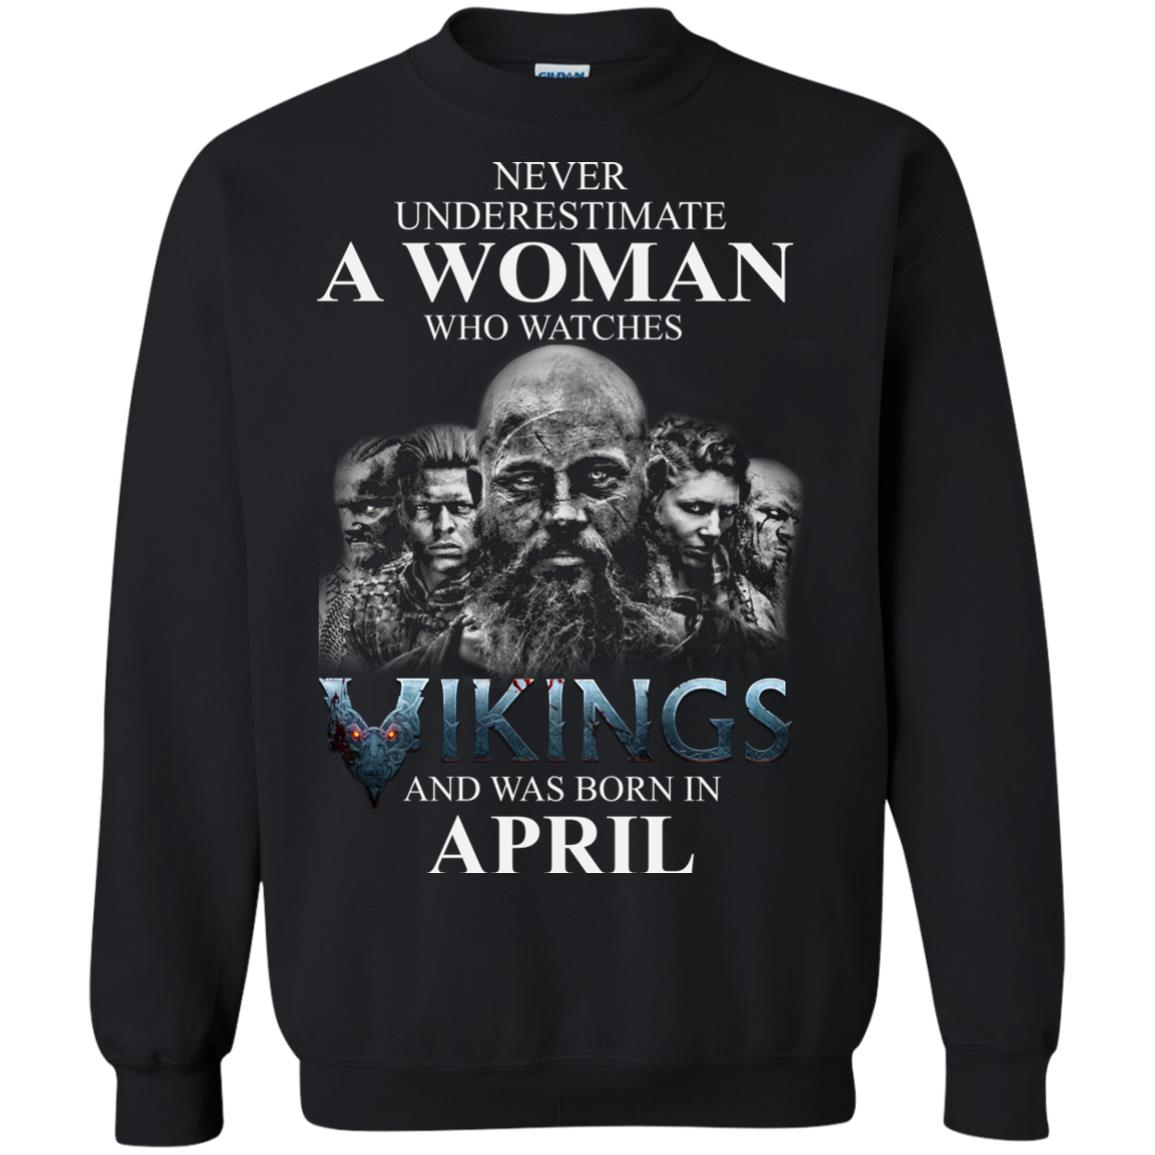 image 1321 - Never Underestimate A woman who watches Vikings and was born in April shirt